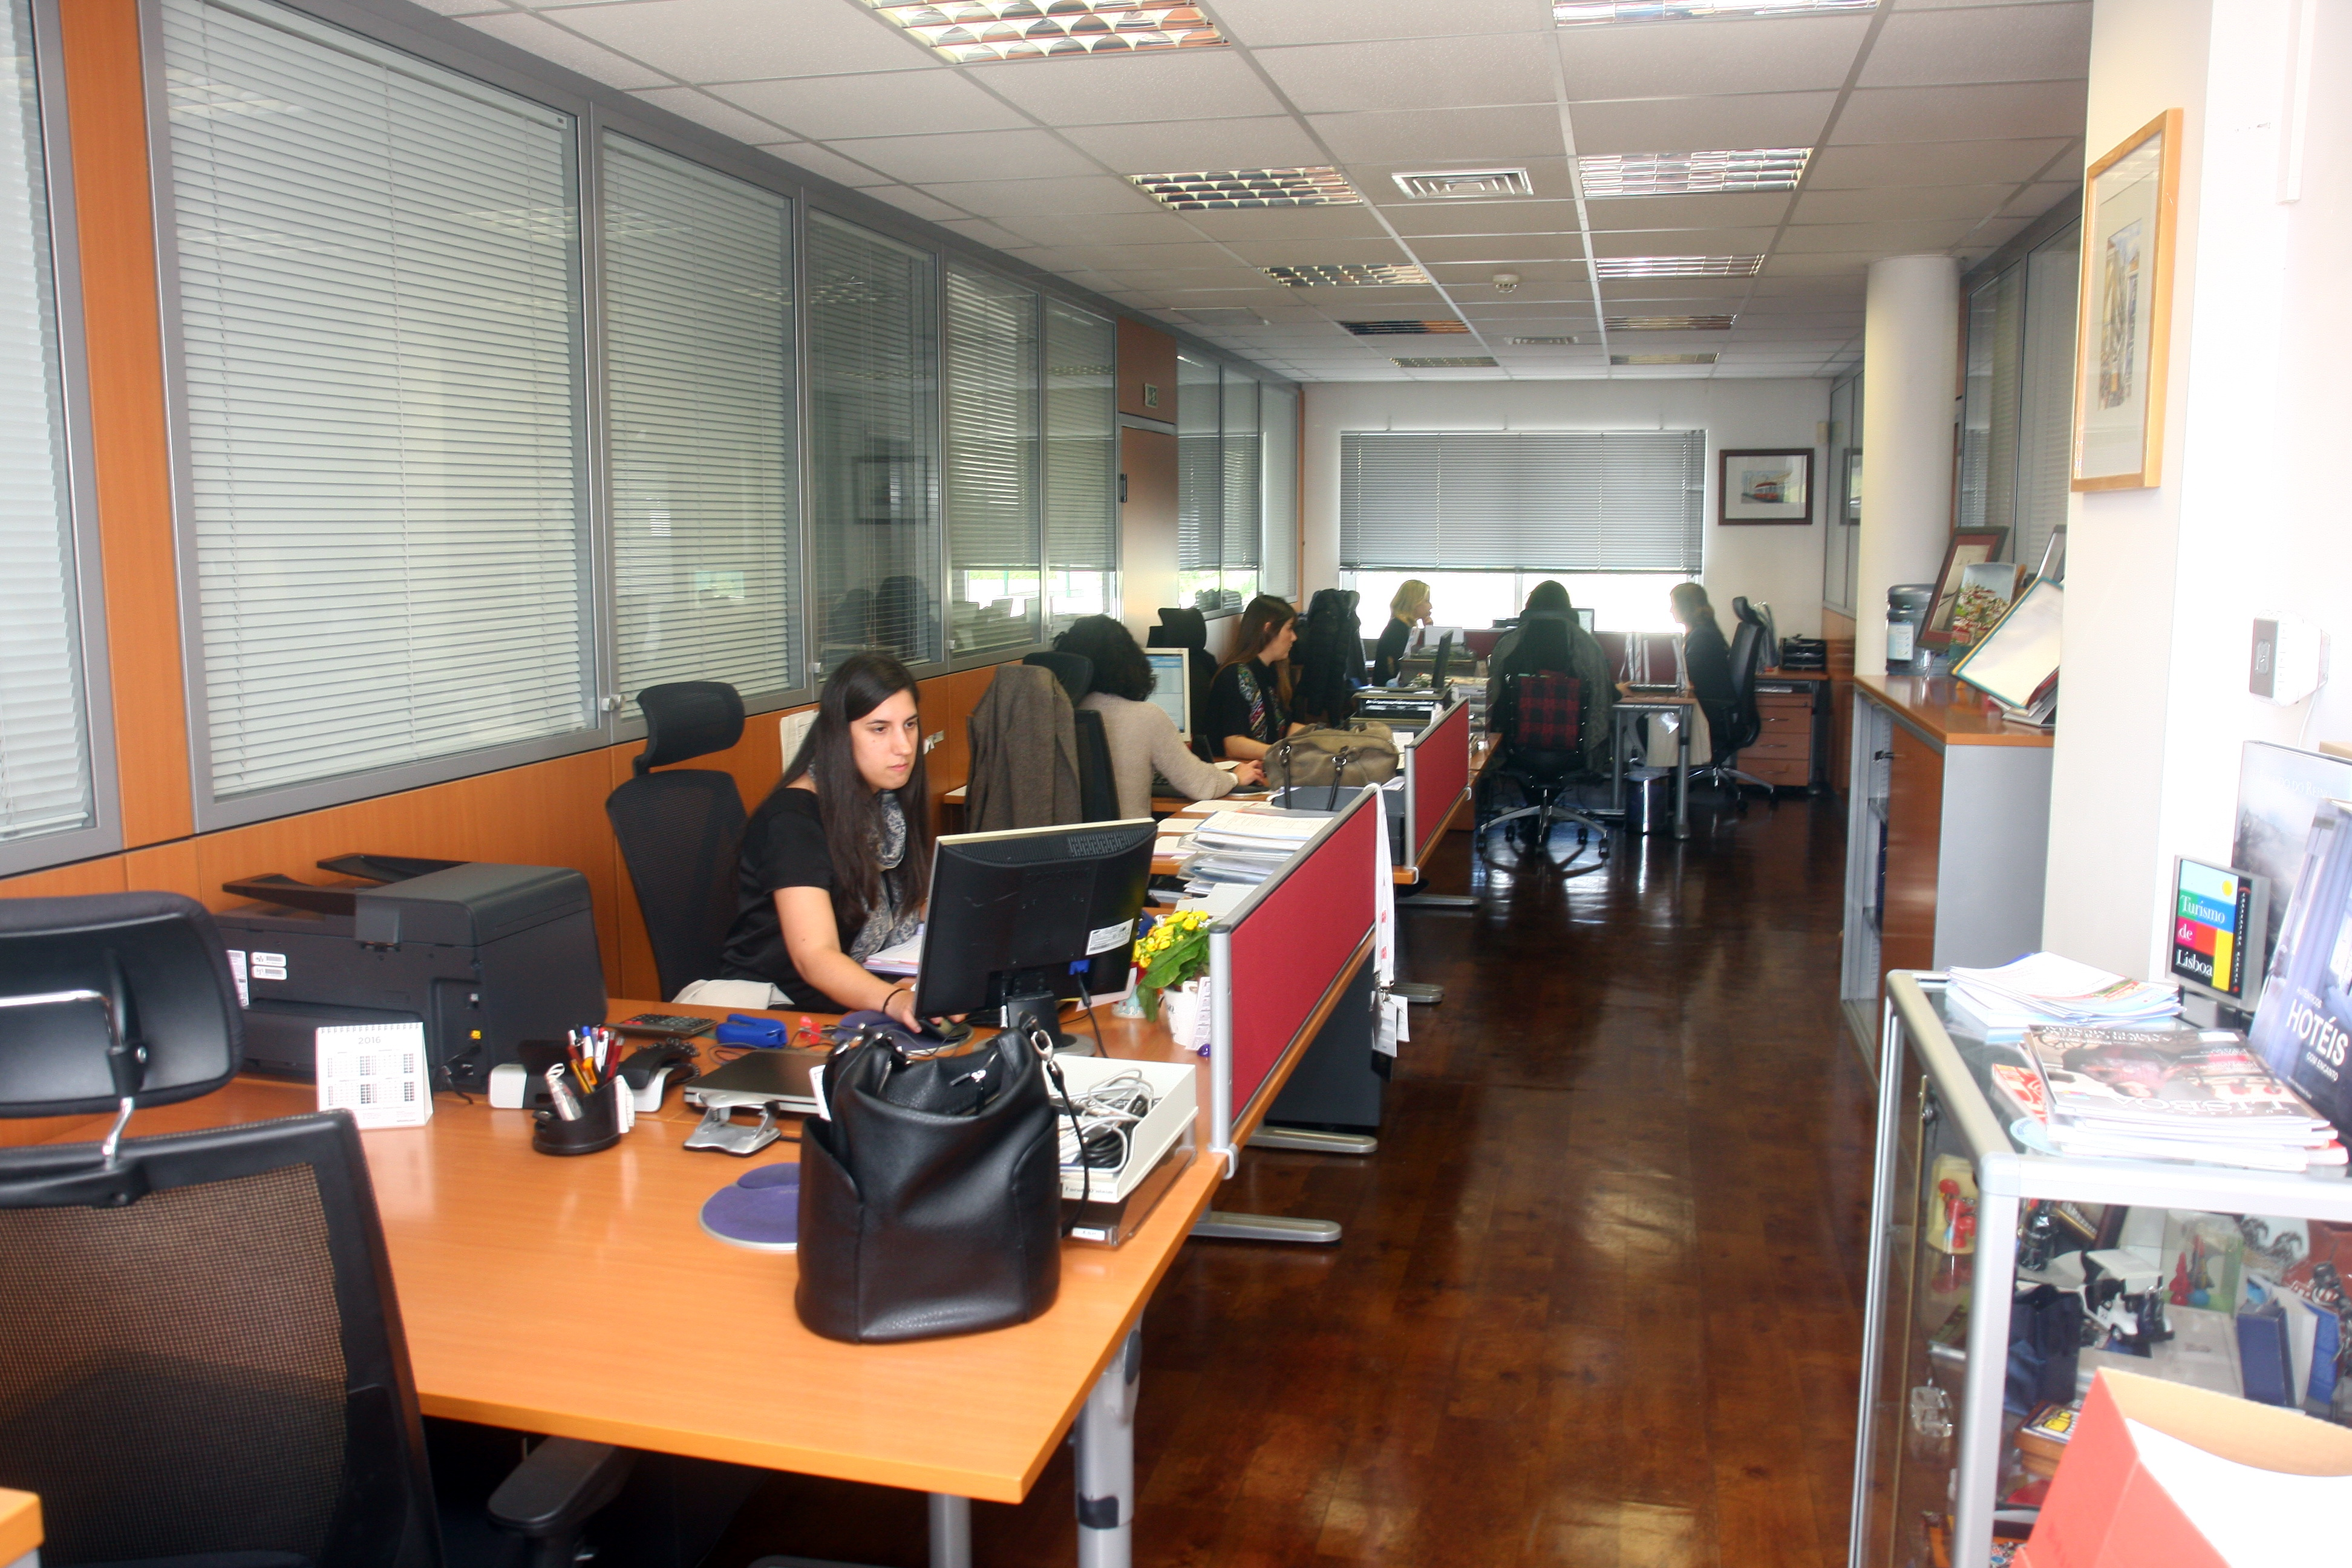 Our office